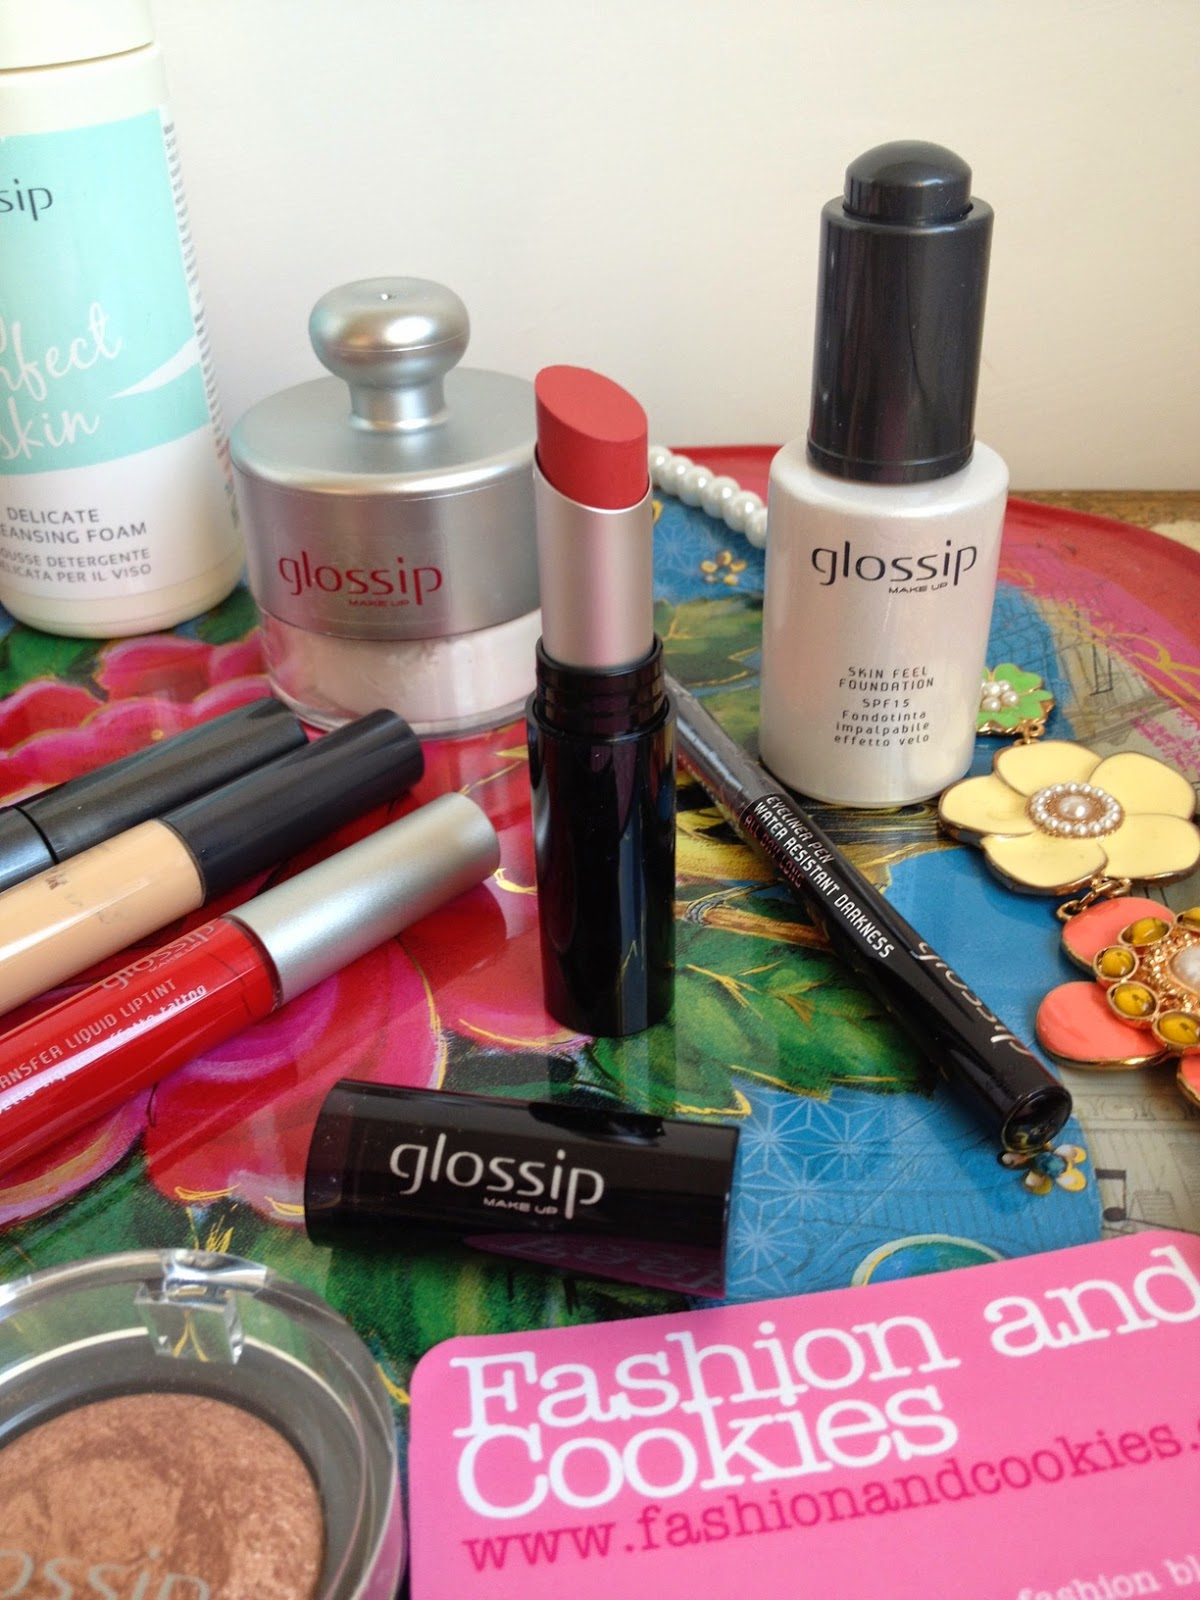 Glossip Milano make-up, Glossip rossetto, italian brand, trucco, beauty, Fashion and Cookies fashion blog